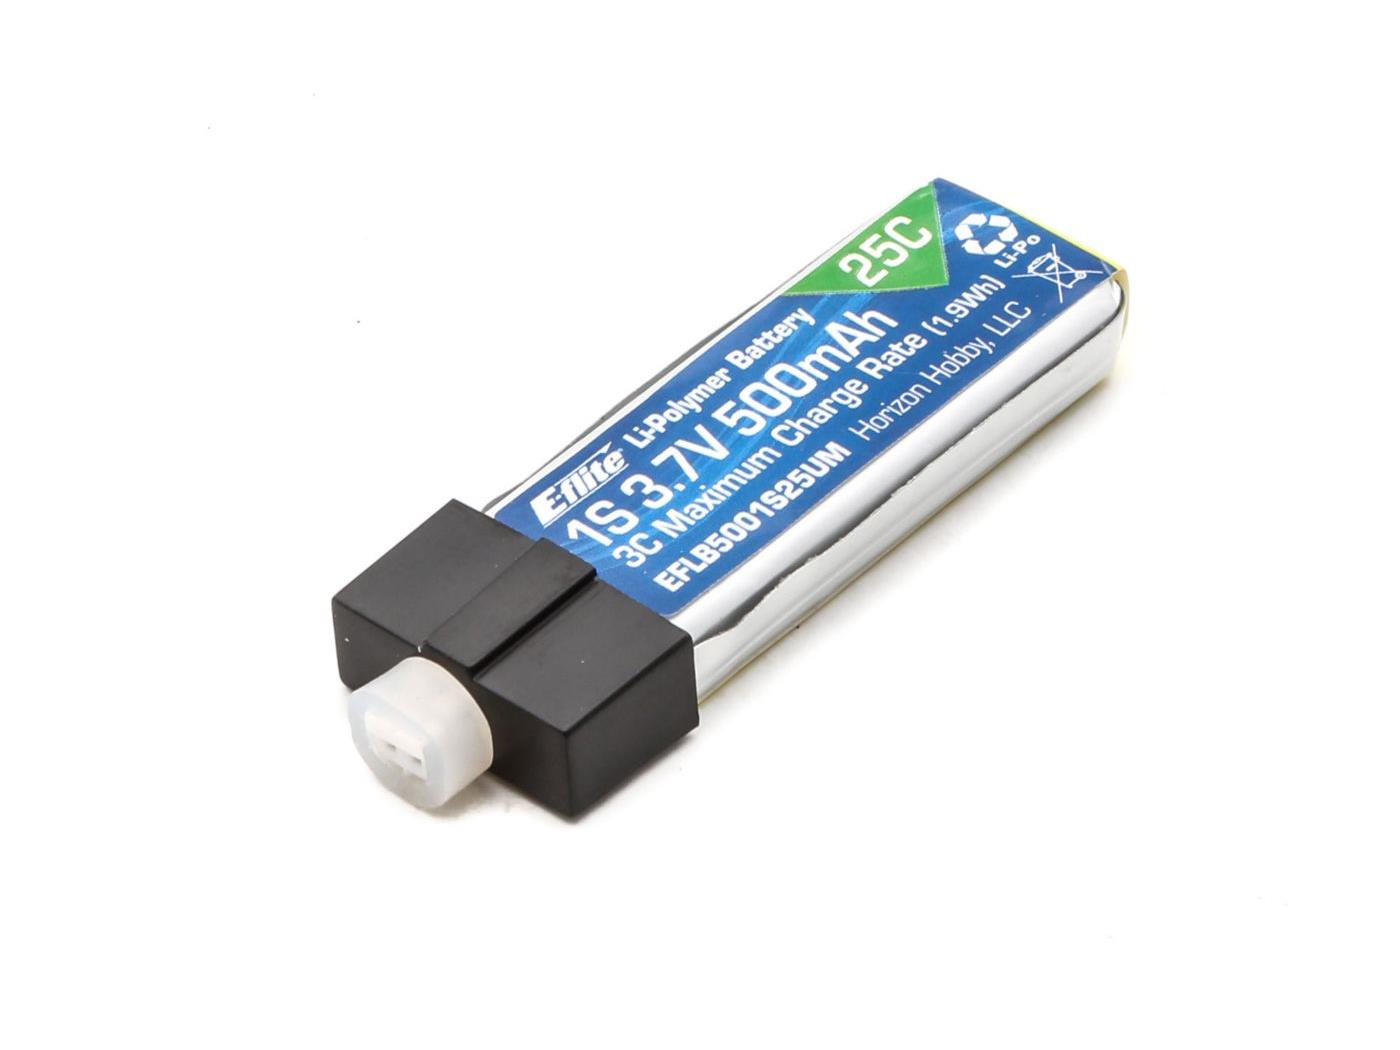 500mAh 1S 3.7V 25C LiPo High Current UMX Connector